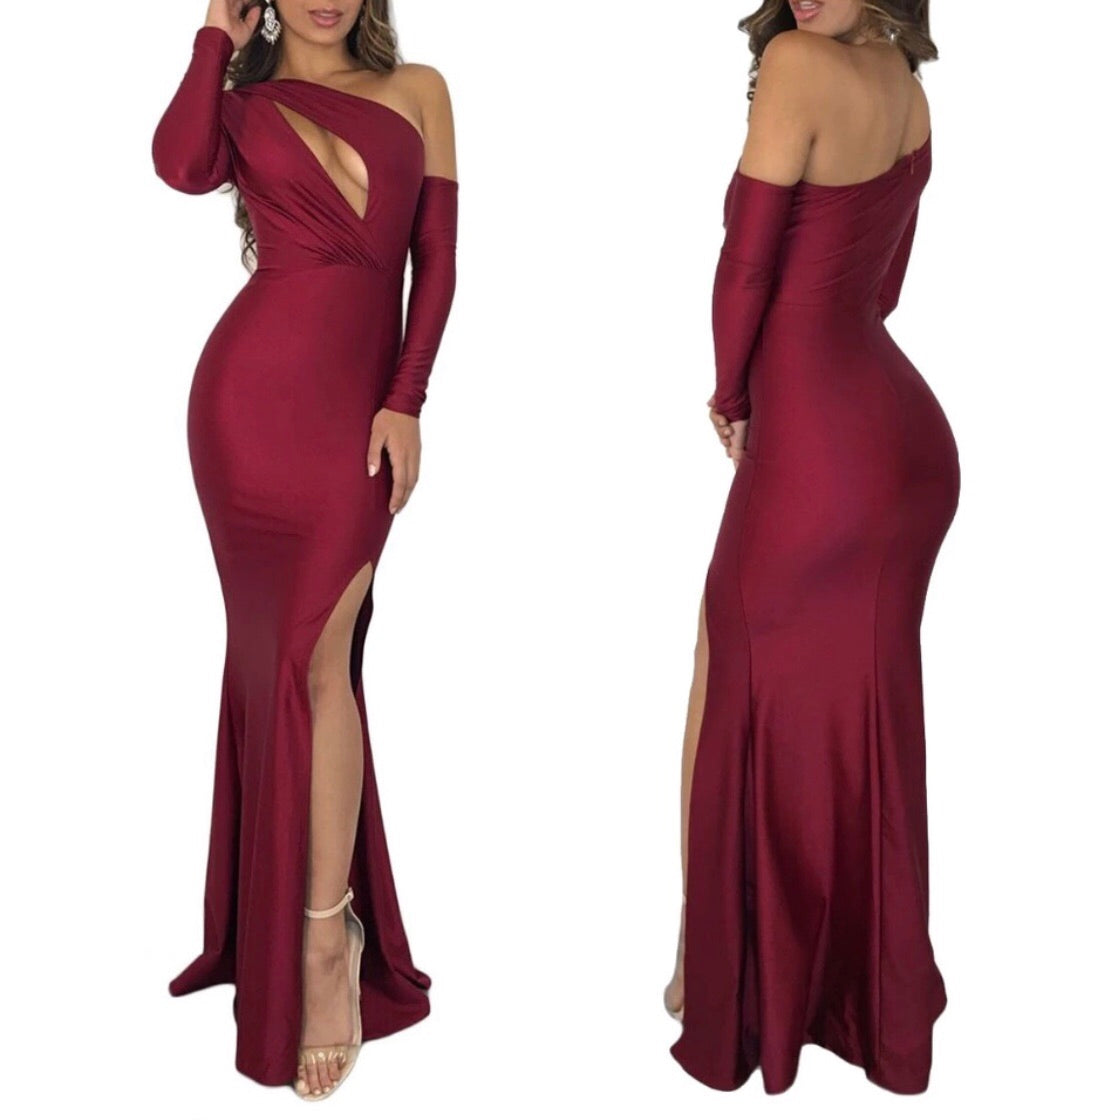 Maria's Hermosa Gown - The Divaz Closet